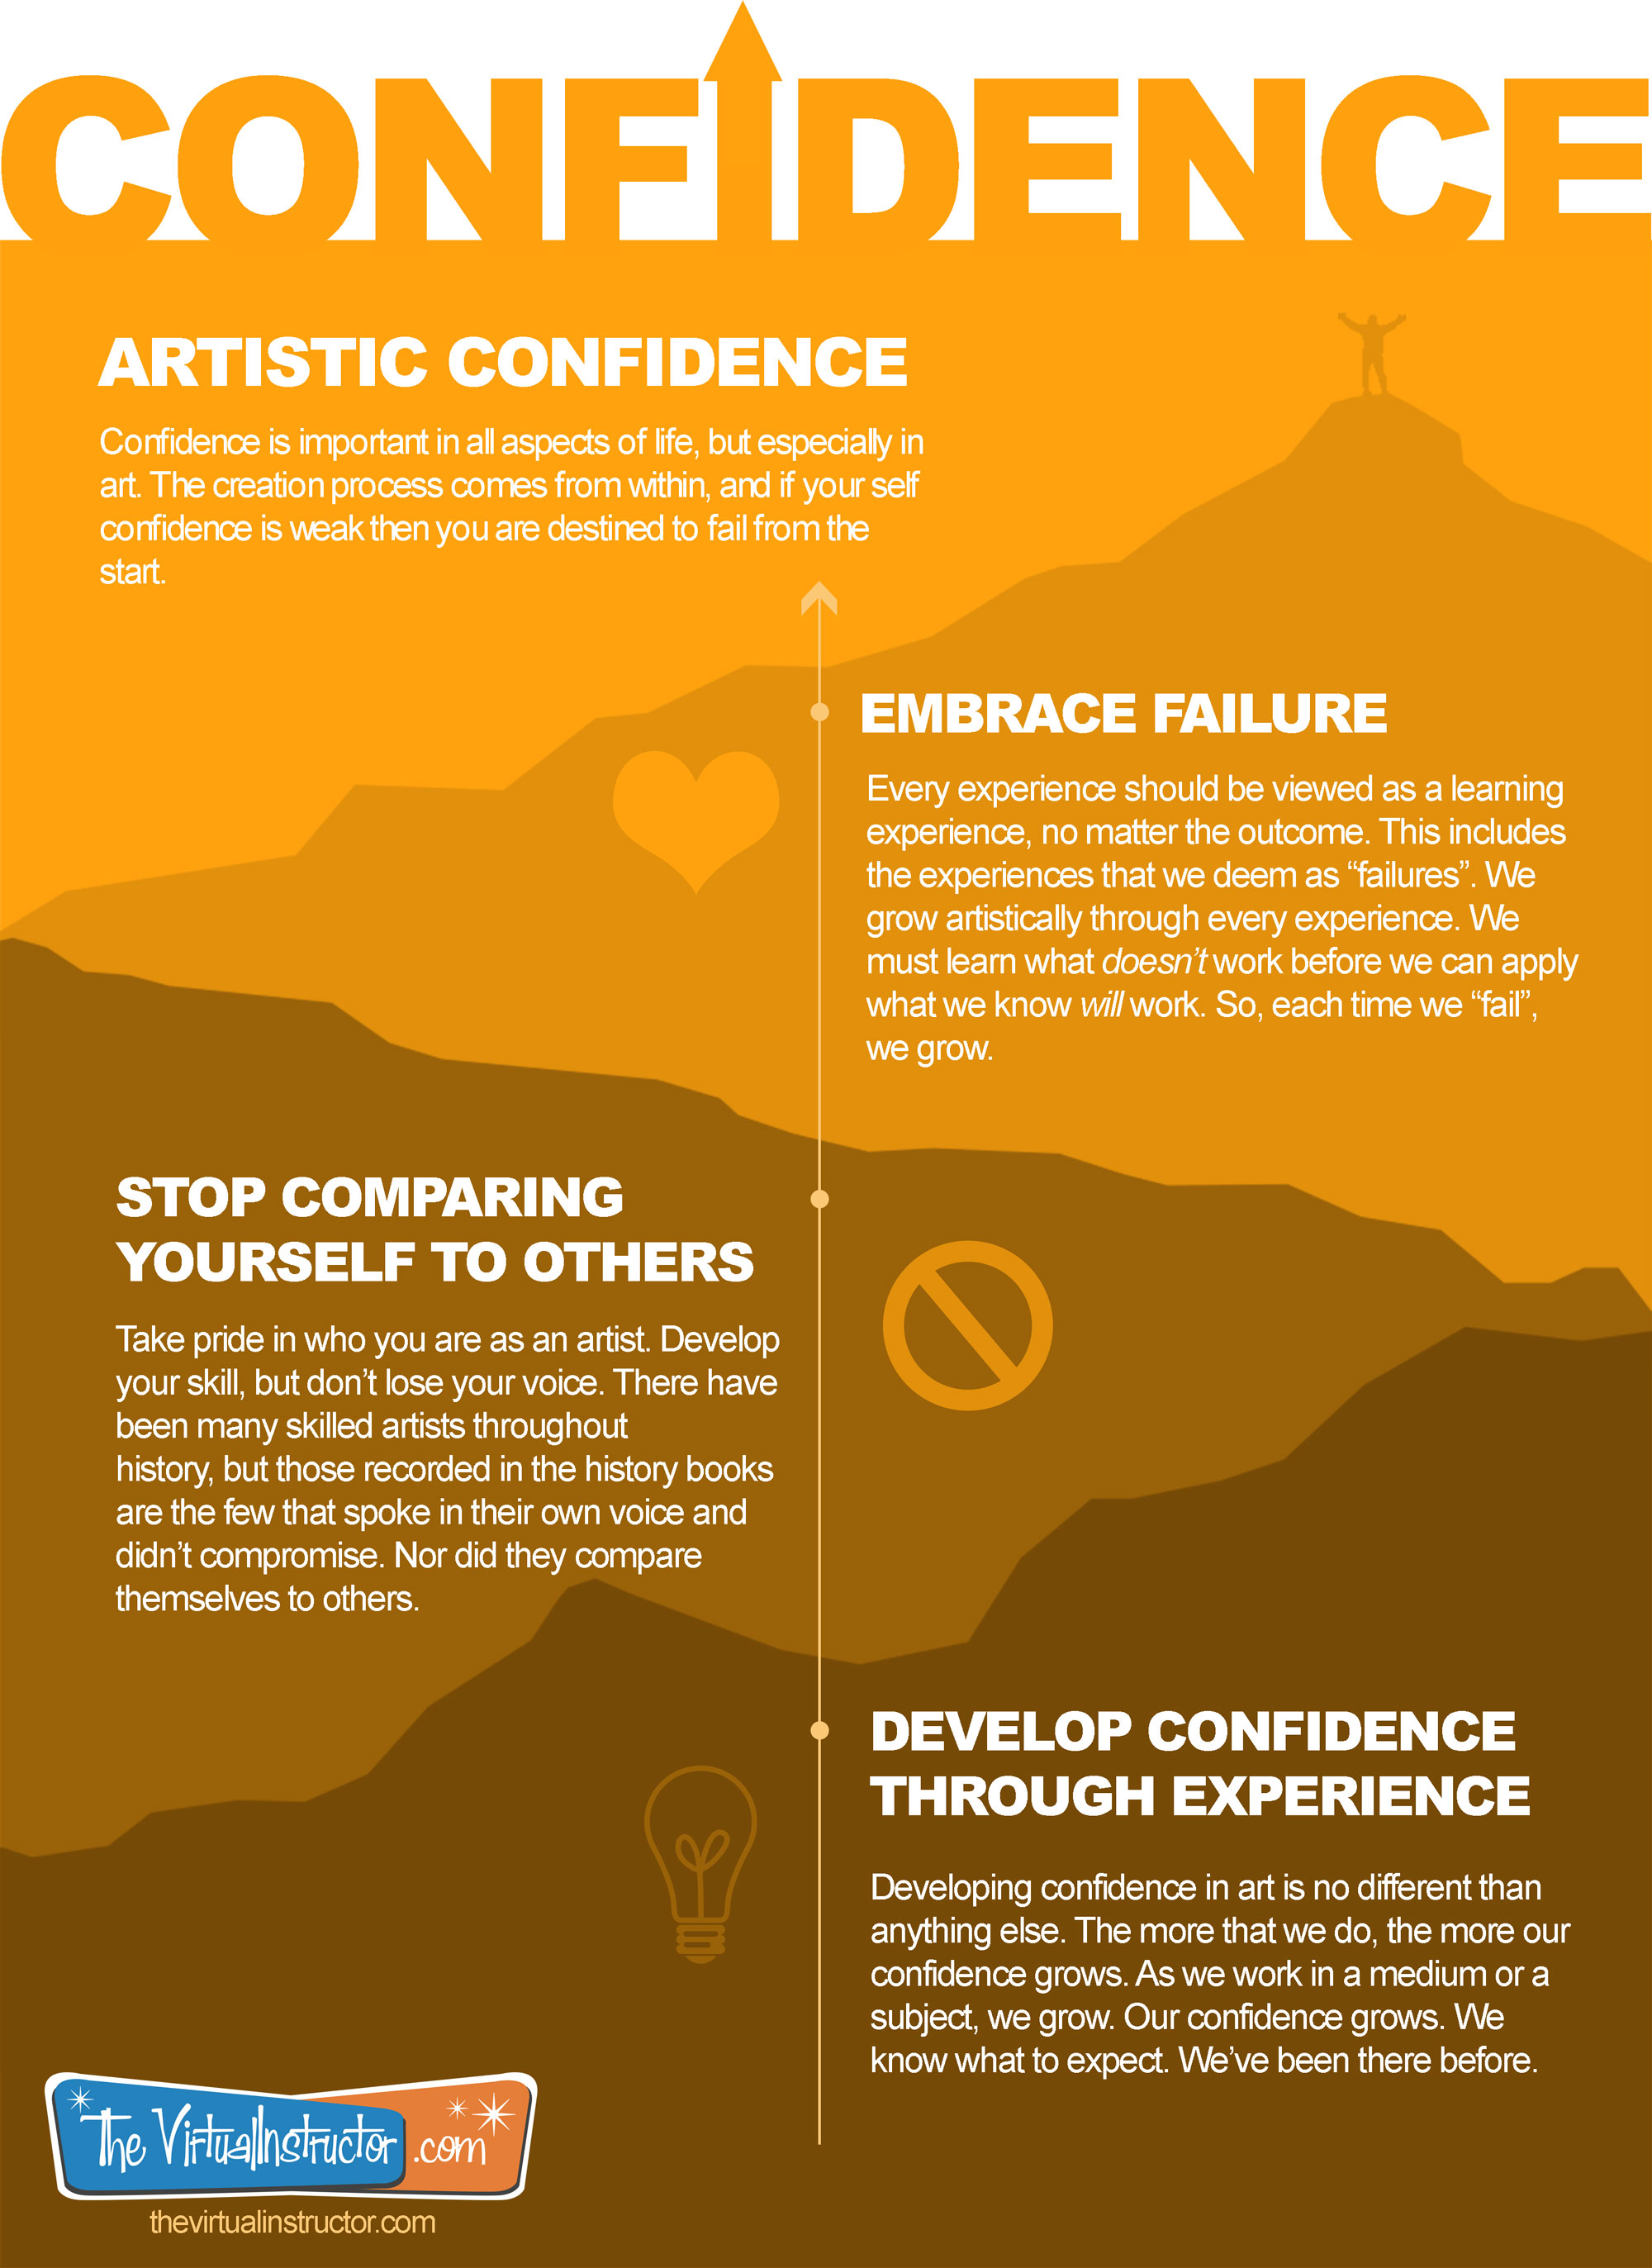 Artistic Confidence Why You Need It And How To Grow It